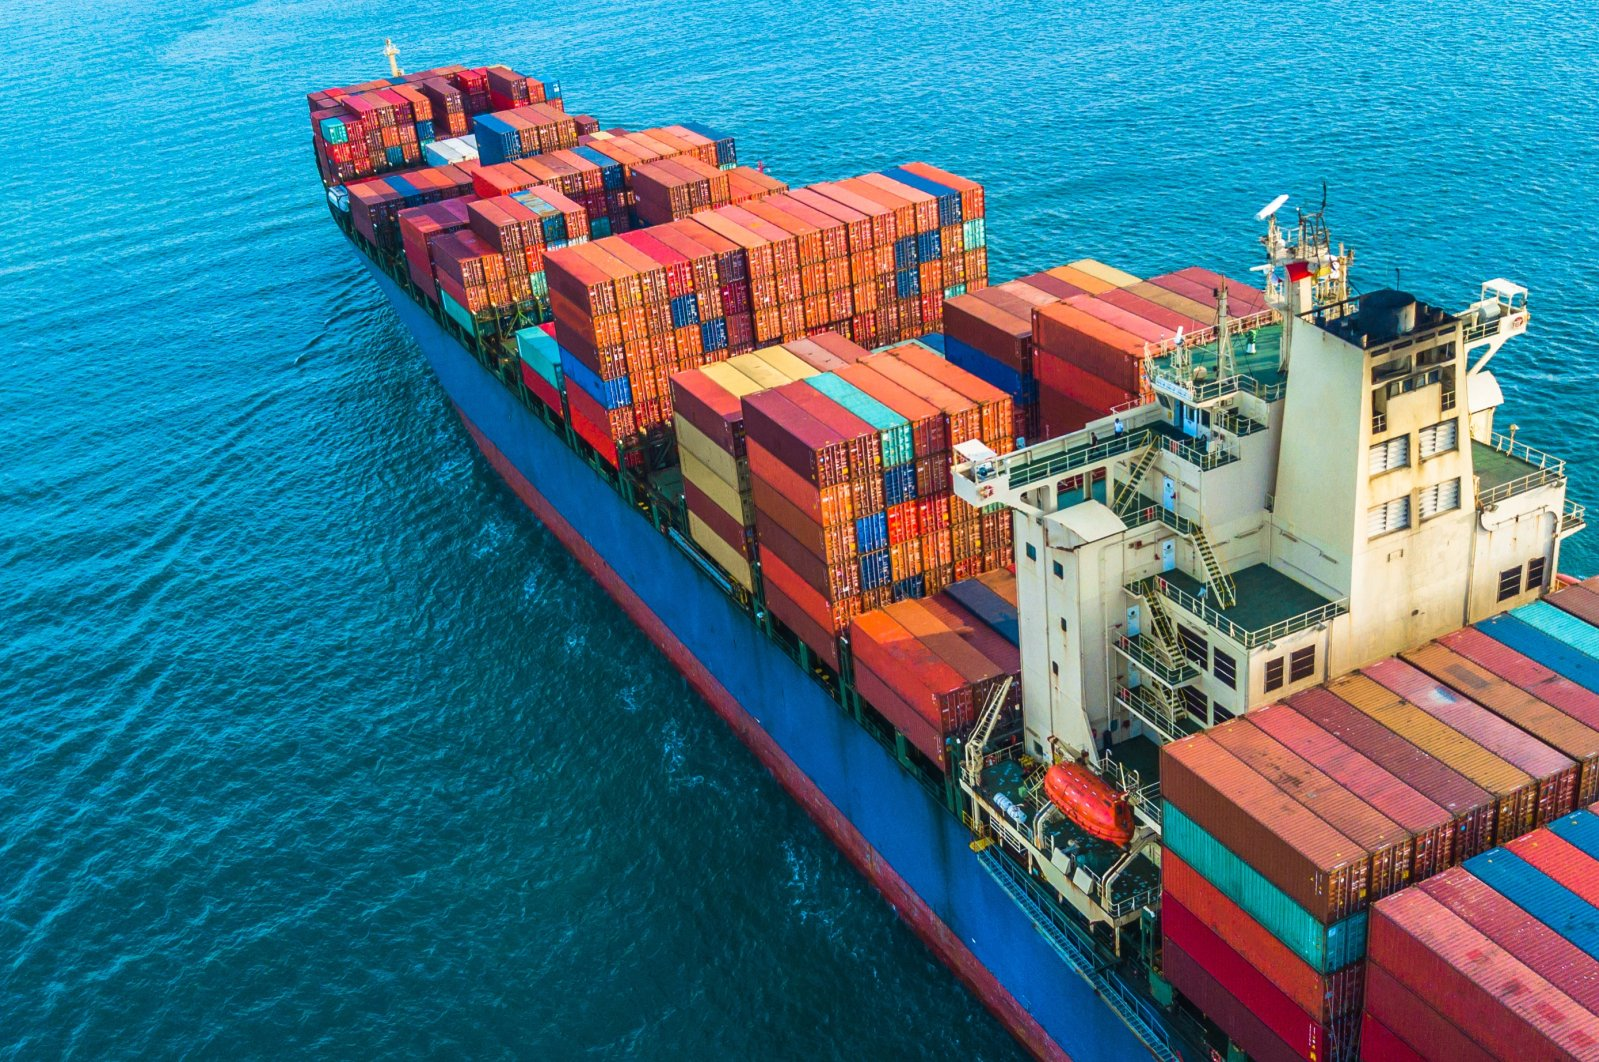 A container ship in the open sea. (Shutterstock Photo)